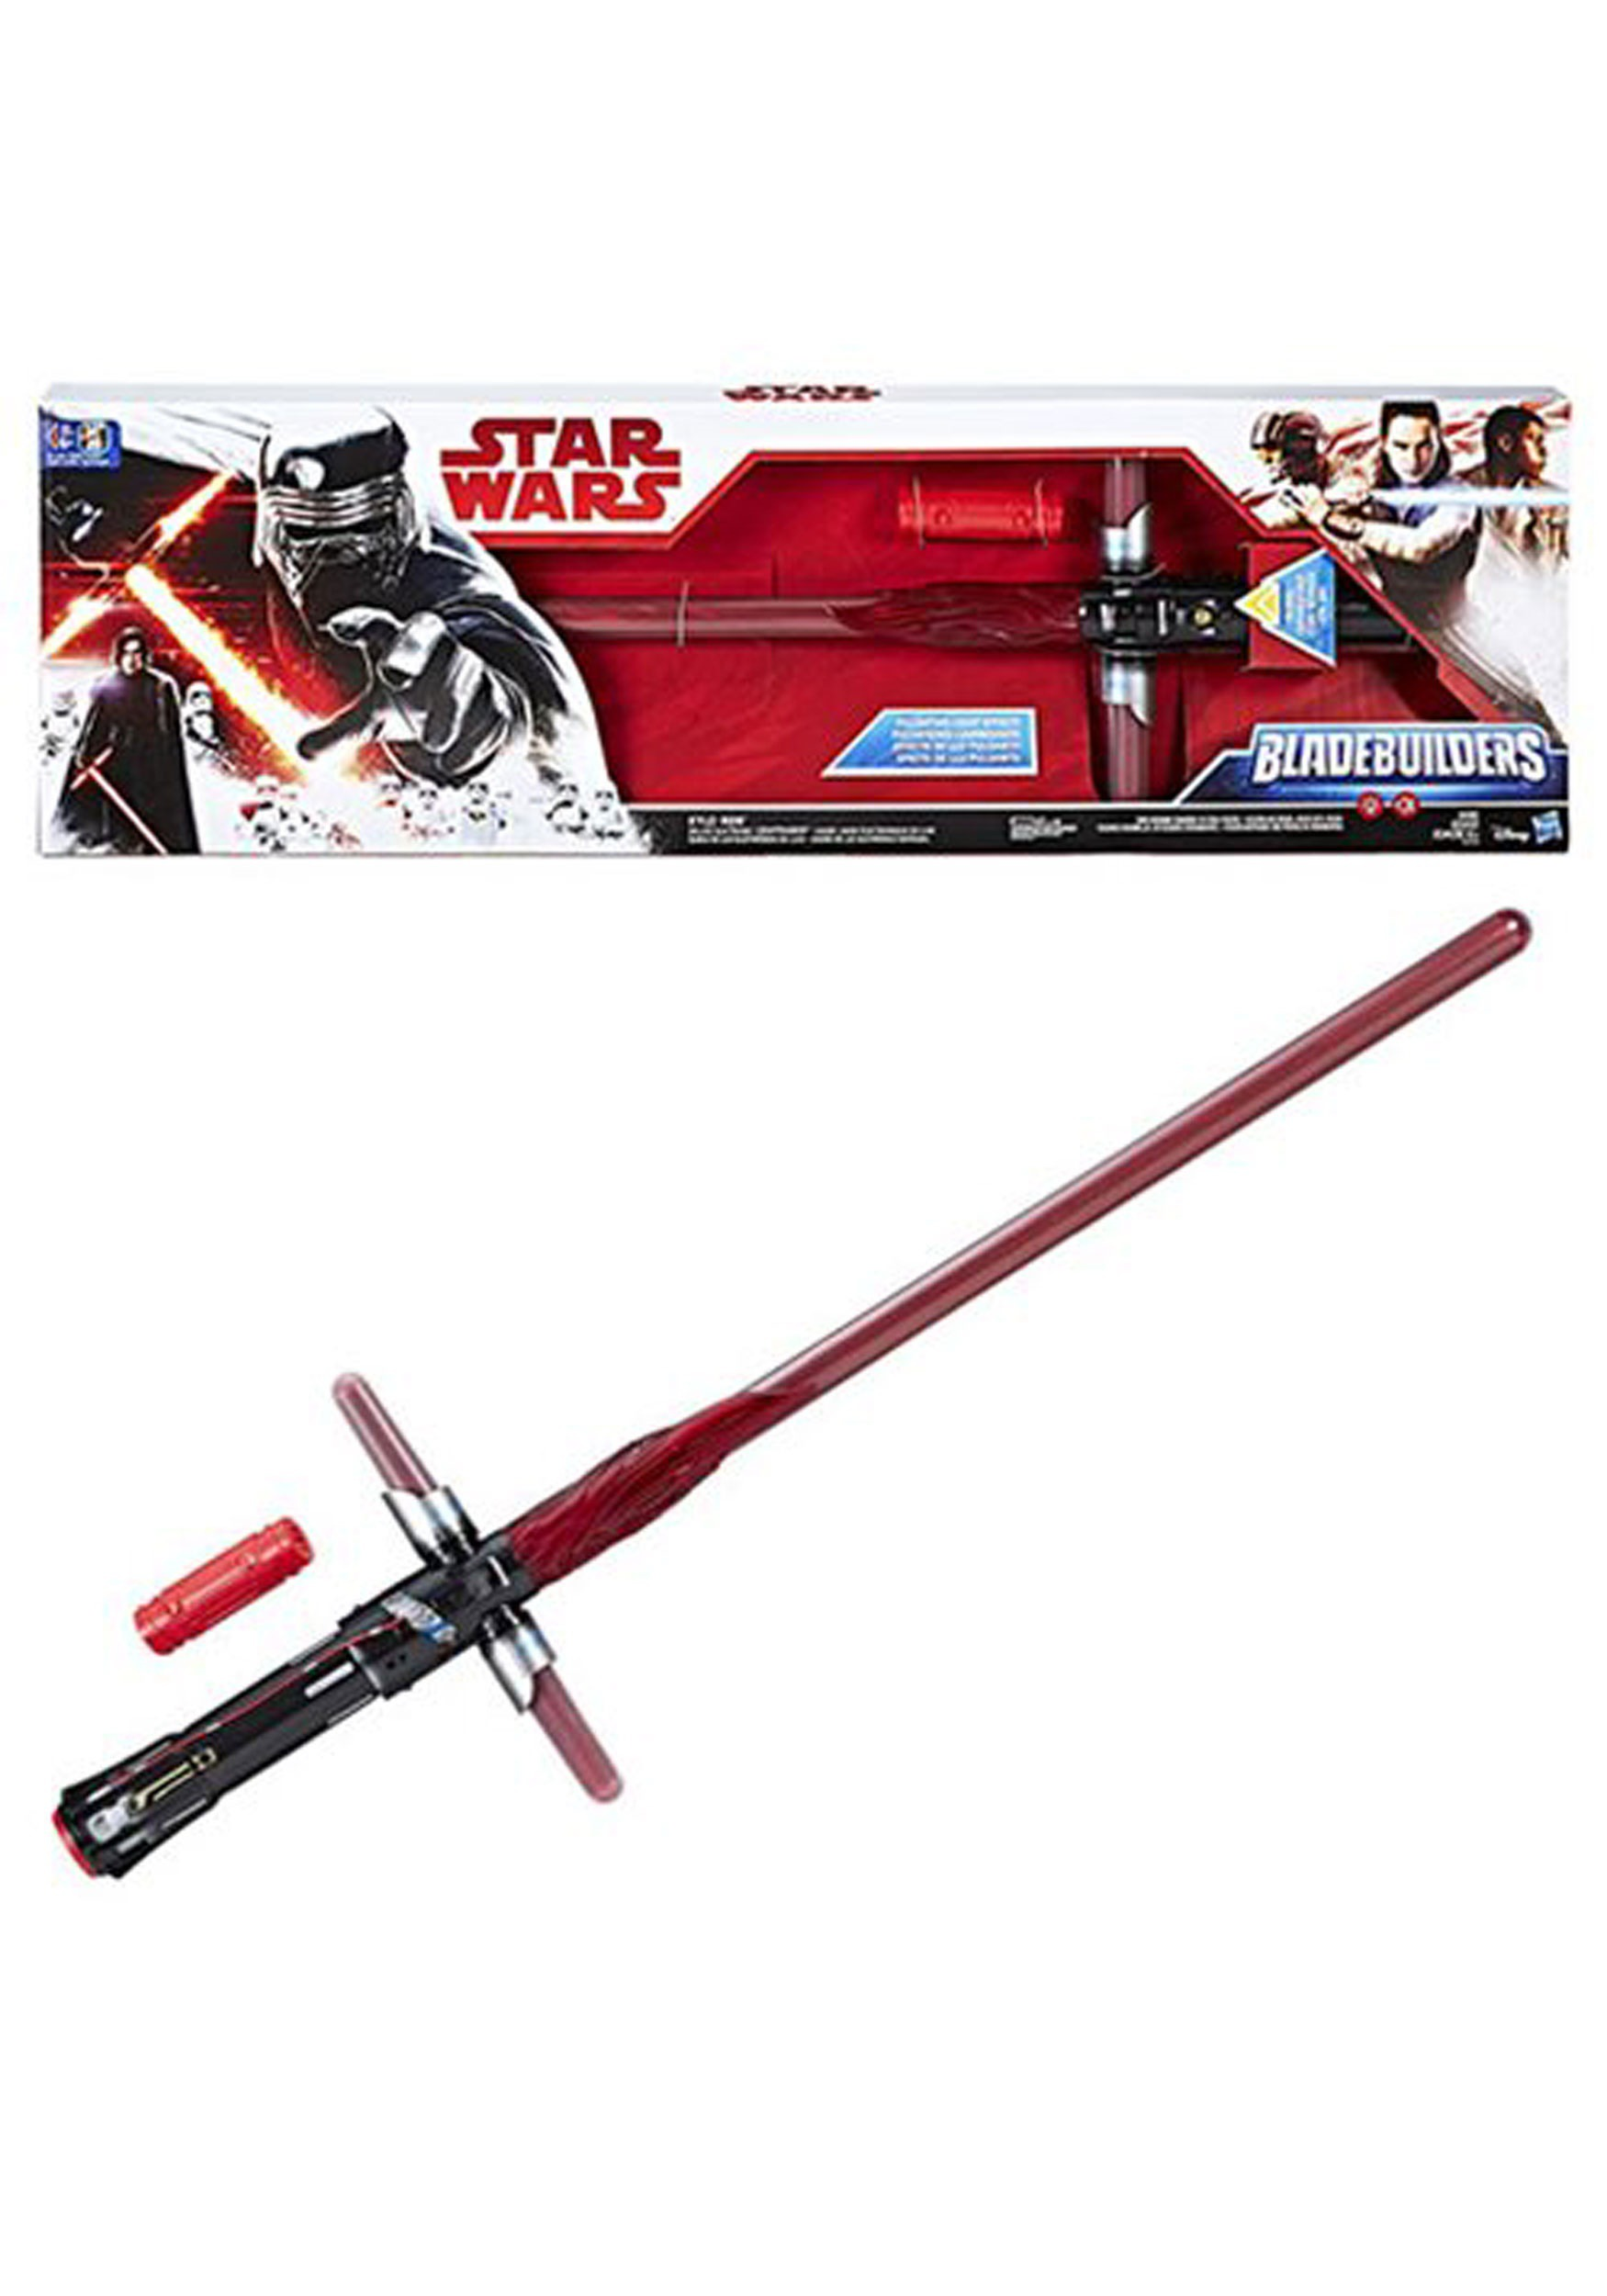 INOpets.com Anything for Pets Parents & Their Pets Star Wars: The Last Jedi Kylo Ren Electronic Lightsaber